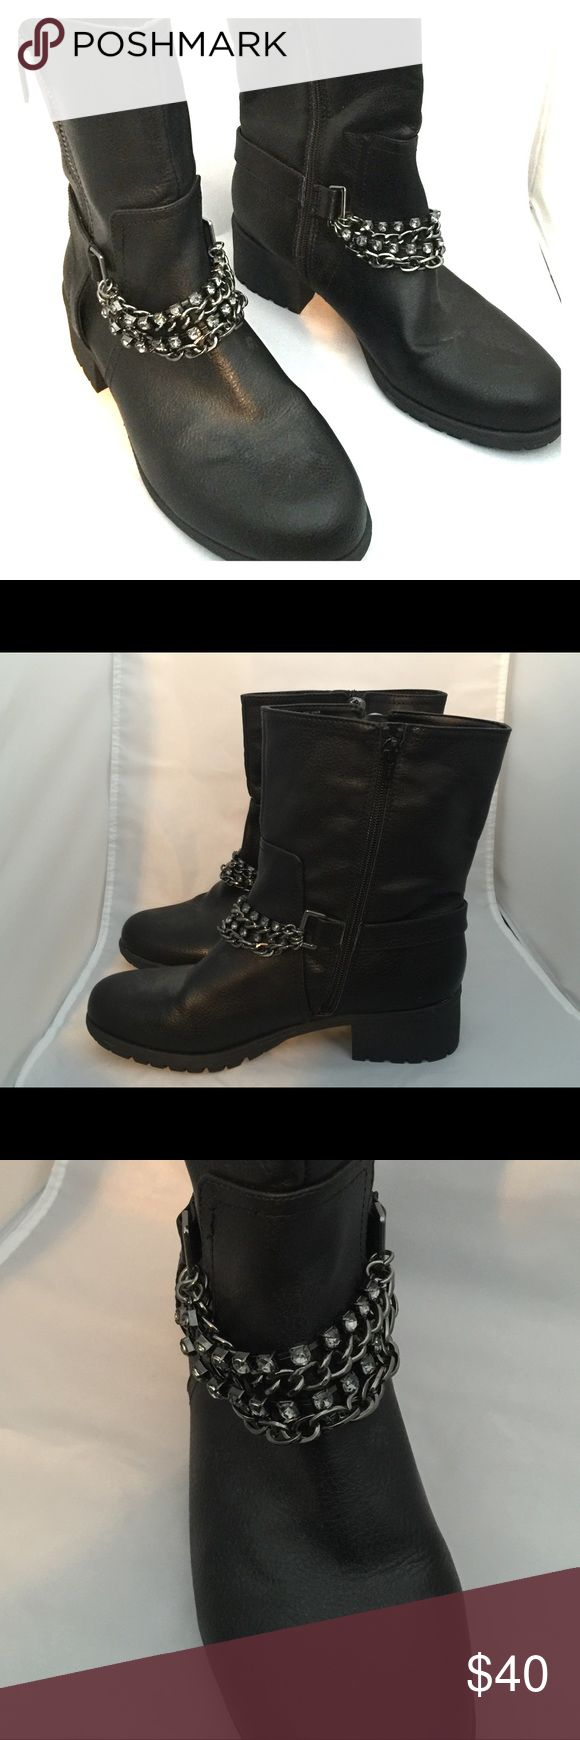 Vera Wang Black Moto Boots with Chain Detail These are like new Vera Wang black moto boots. They come up past the ankle with chain and rhinestone detailing. There is a zipper detail on the outside and a wear zipper on the inner side of the boot. They have minimal wear on bottom of boot since they have only been worn one time. Simply Vera Vera Wang Shoes Combat & Moto Boots